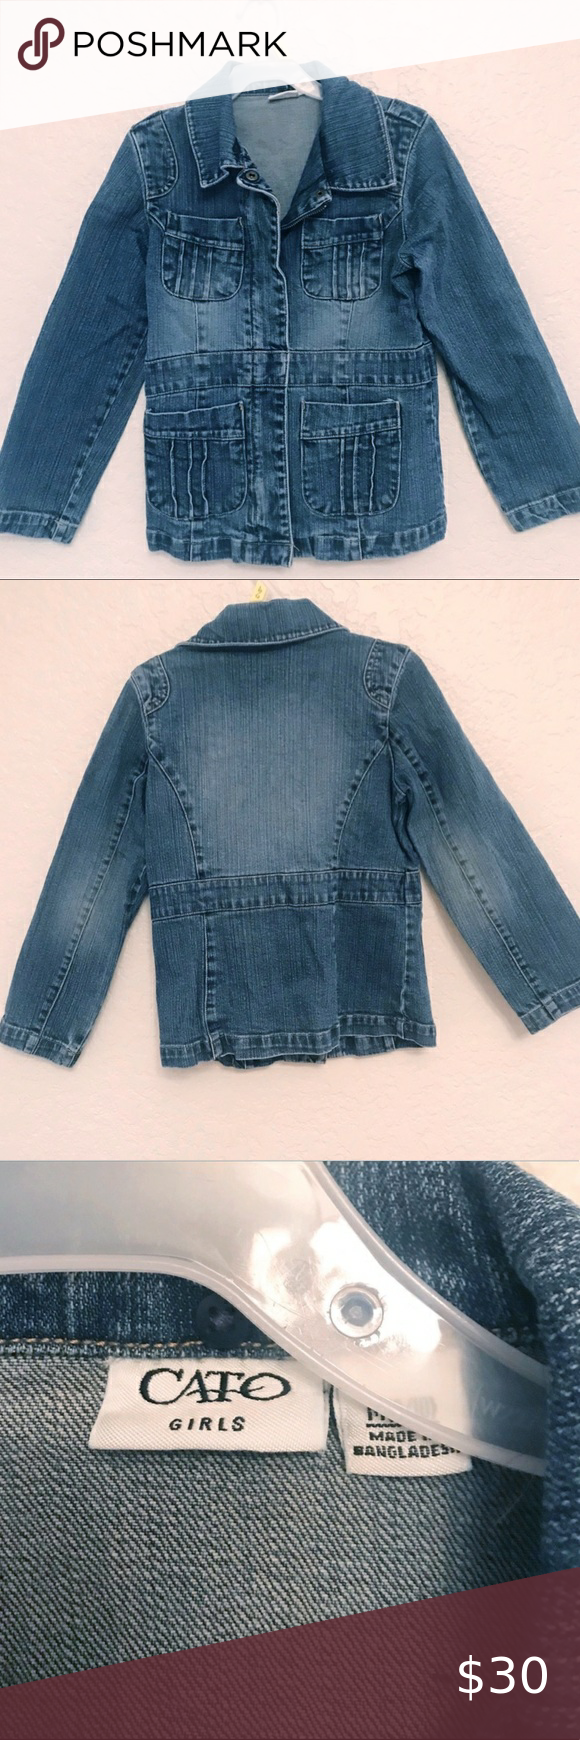 Cato Girls Jean Jacket Cato Girls Jean Jacket Zipper Button Closure Several Pockets Length 19 5 In Flat Across Jean Jacket For Girls Girls Jeans Jackets [ 1740 x 580 Pixel ]